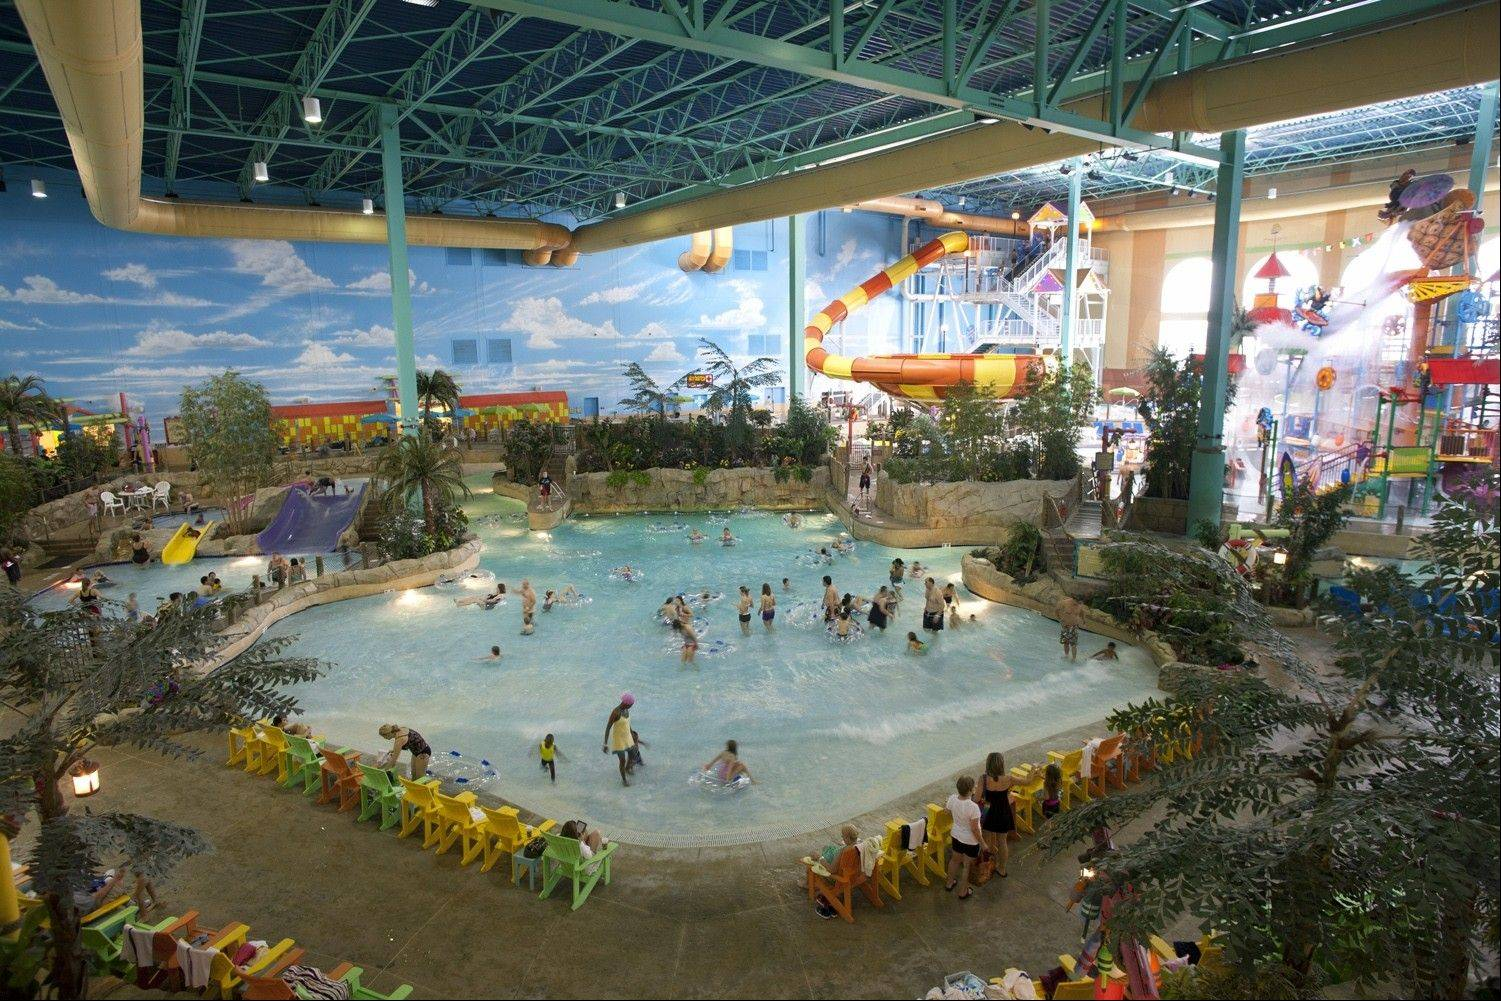 Gurnee's KeyLime Cove Waterpark Resort is under new management. Veracity Hospitality -- a firm founded by the resort's former general manager -- was awarded a management contract by an advisory board representing the resort's owners.